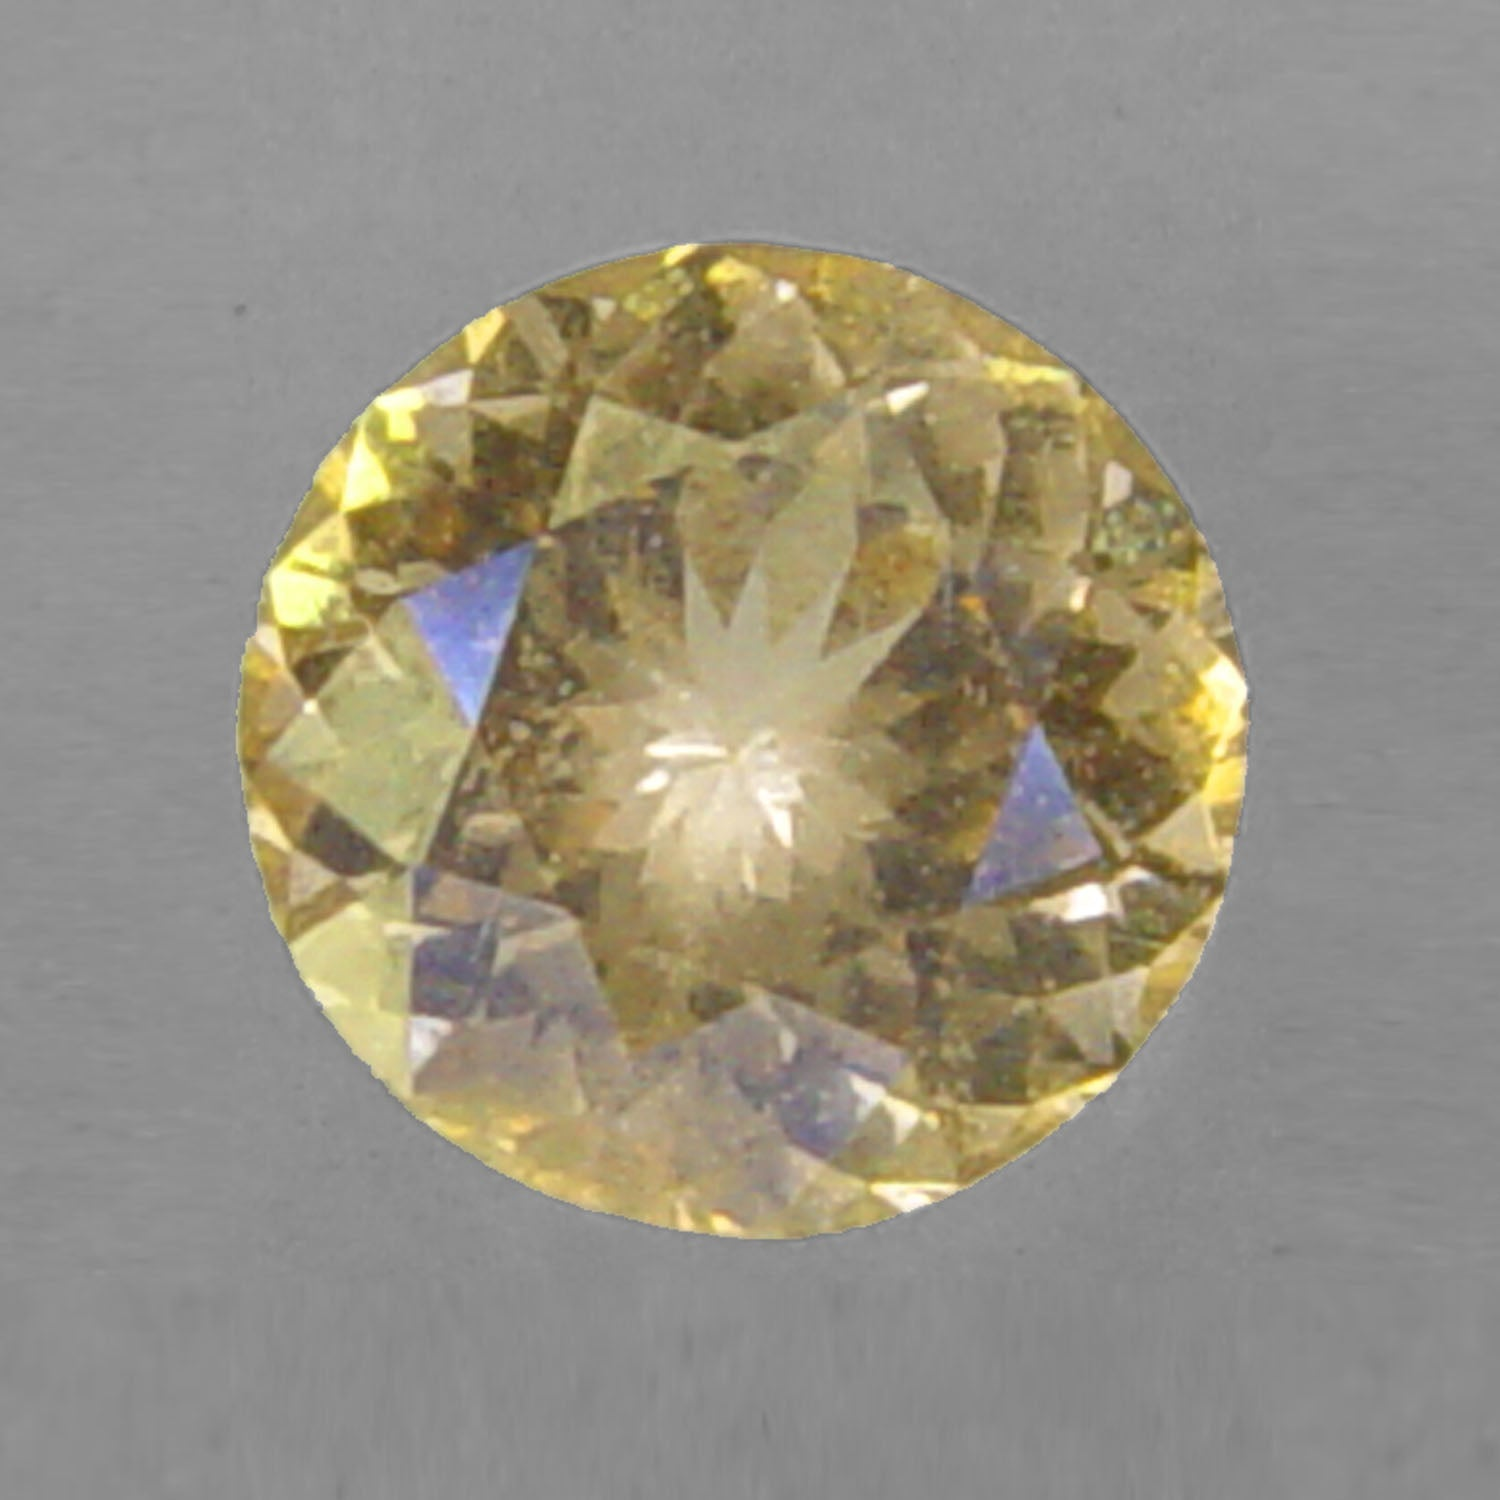 Golden Hessonite Garnet 3.11 ct